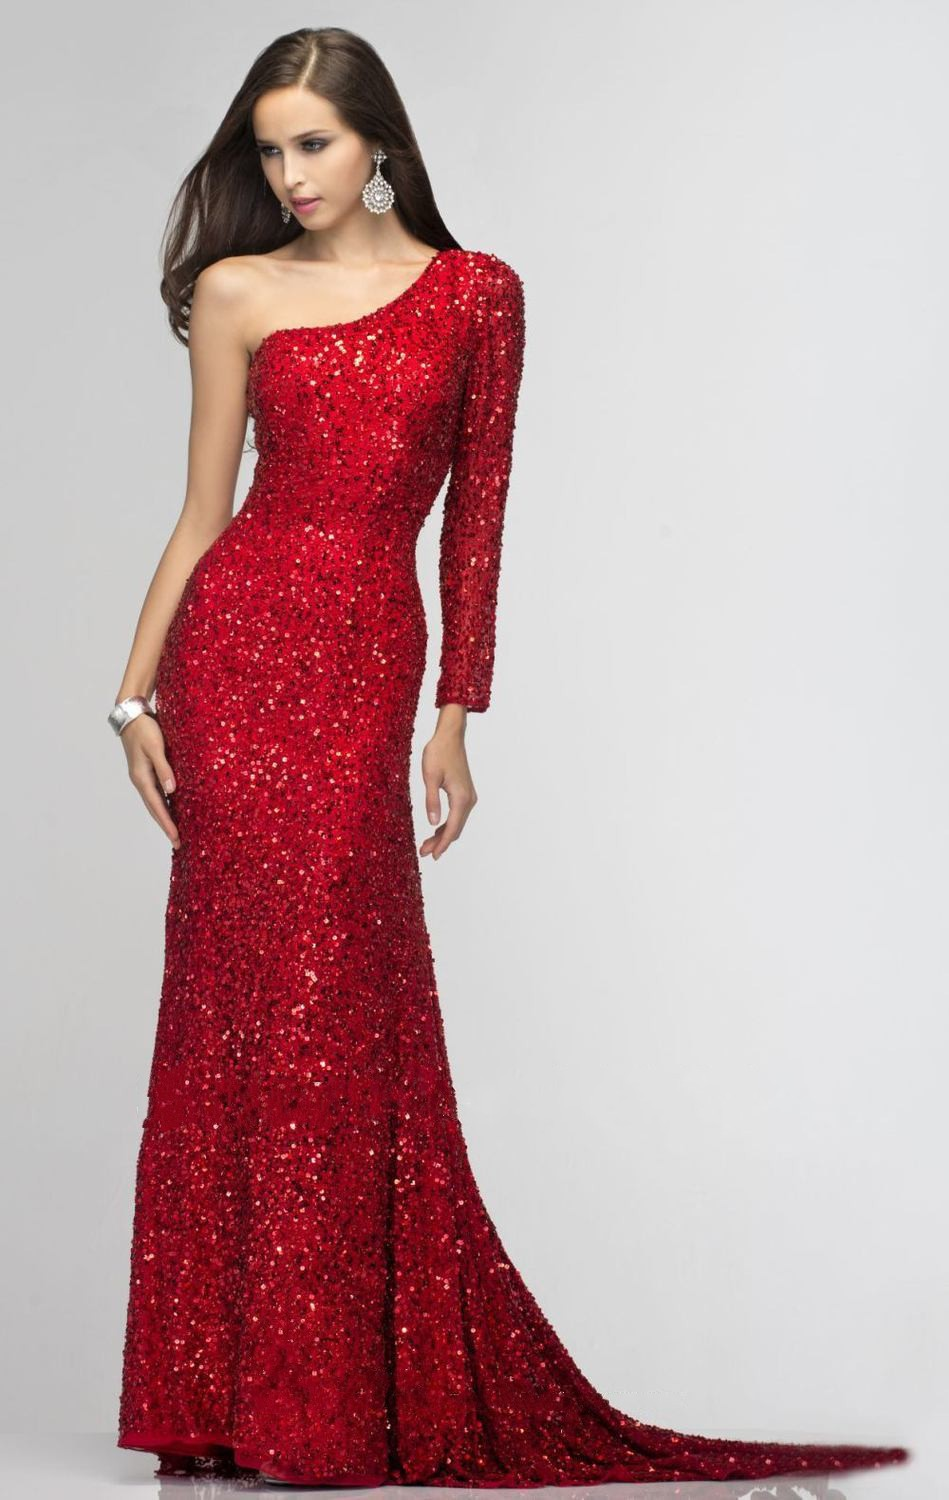 Long Sleeve Red Sequin Prom Dress